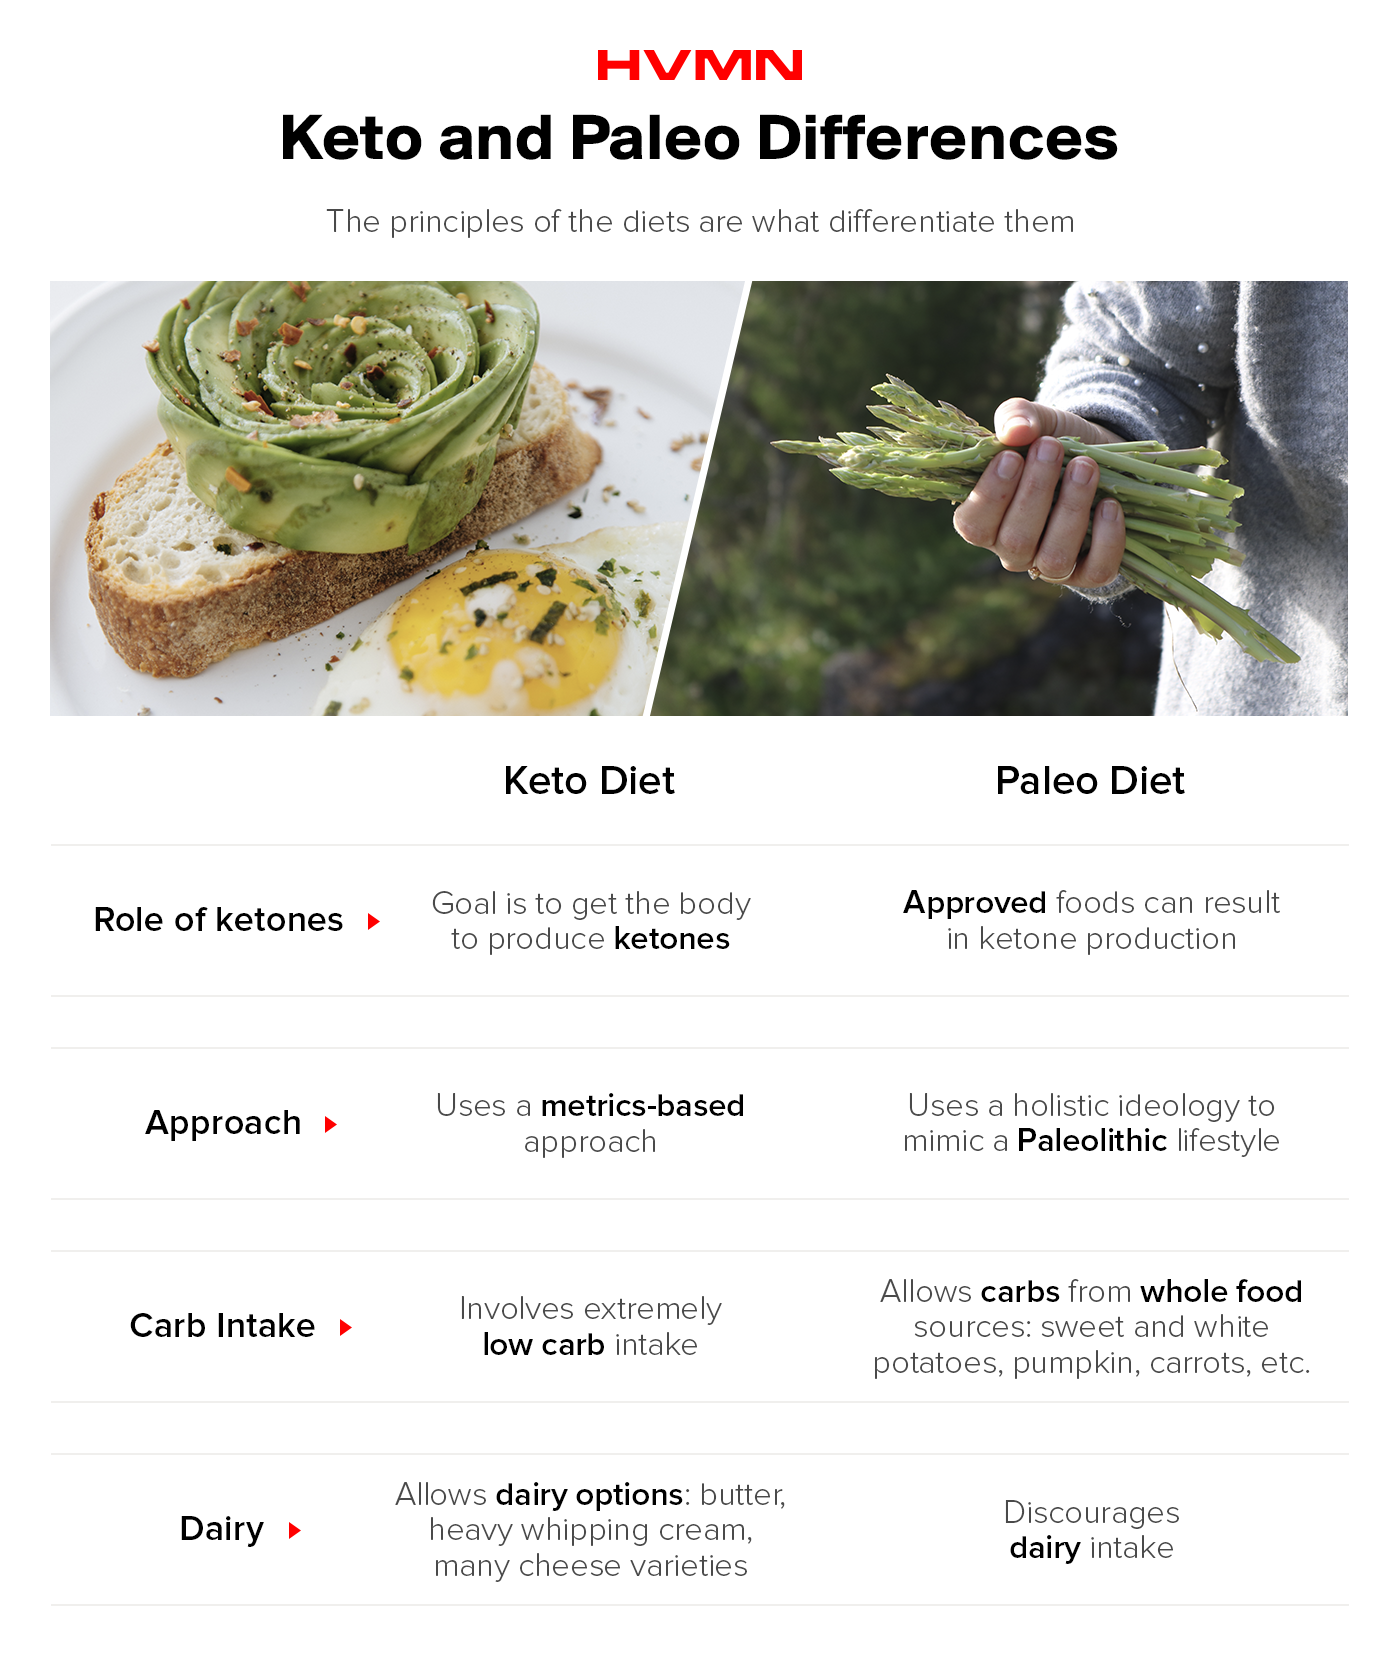 An image of avocado toast and asparagus in hand, showing the difference between keto and paleo